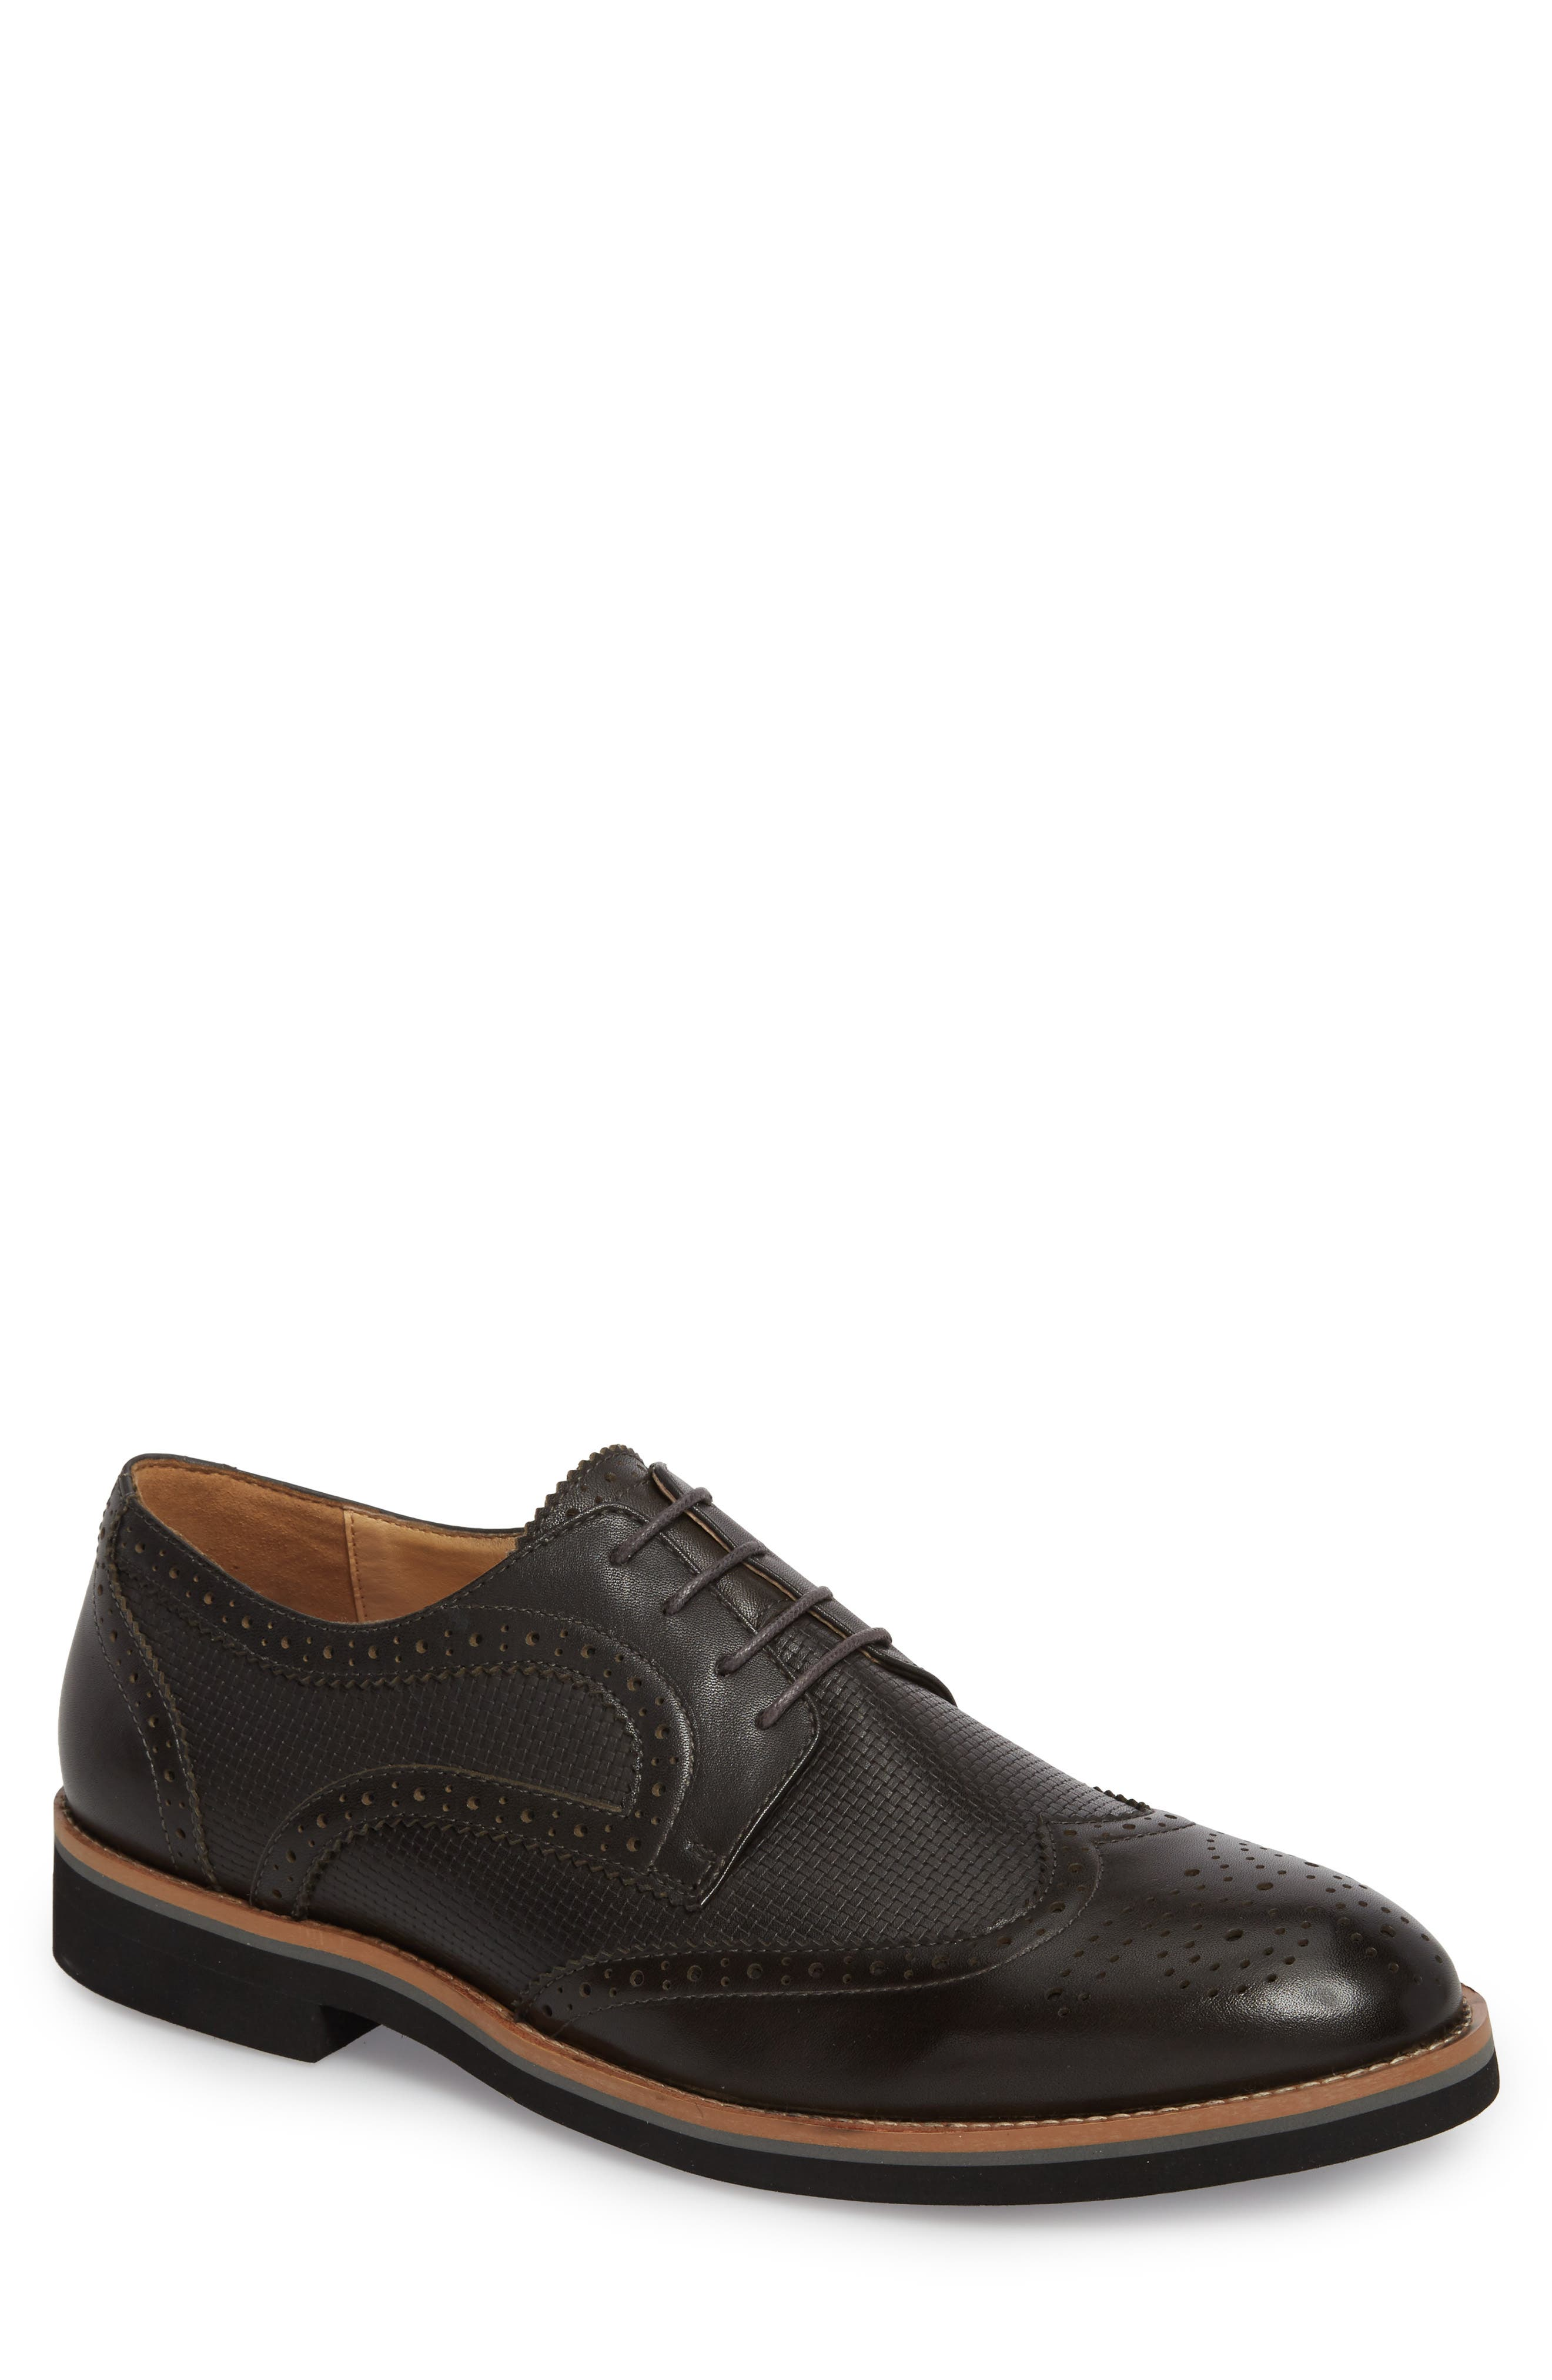 English Laundry Men's Cleave Embossed Wingtip EAMRC